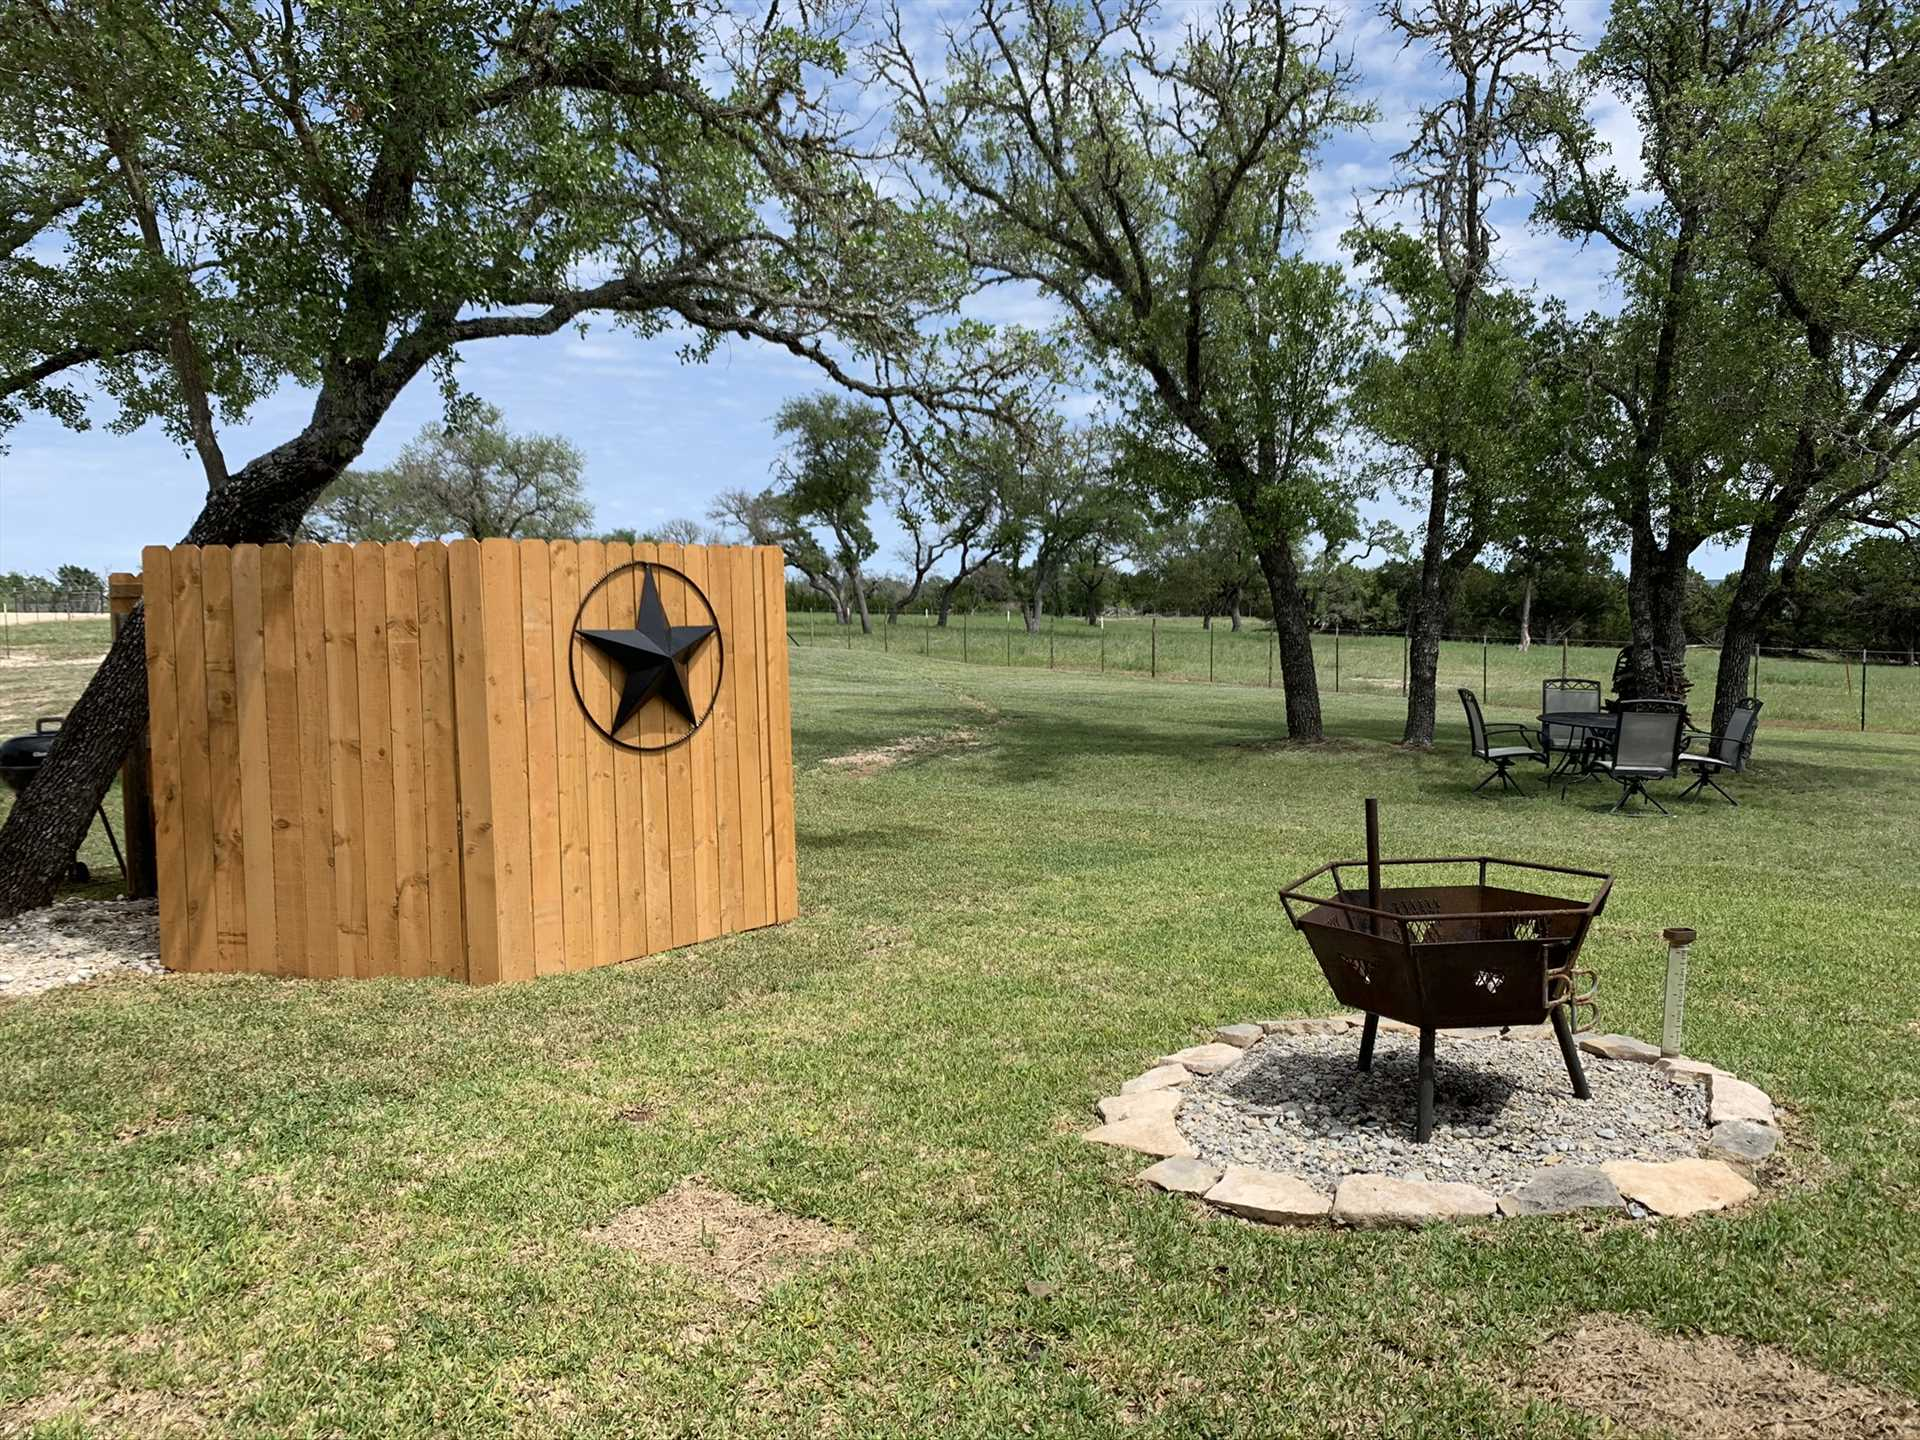 A fire pit and charcoal grill out back make it easy to cook up something special outside! There are also corn hole bags and boards, and a telescope for checking out the Milky Way.